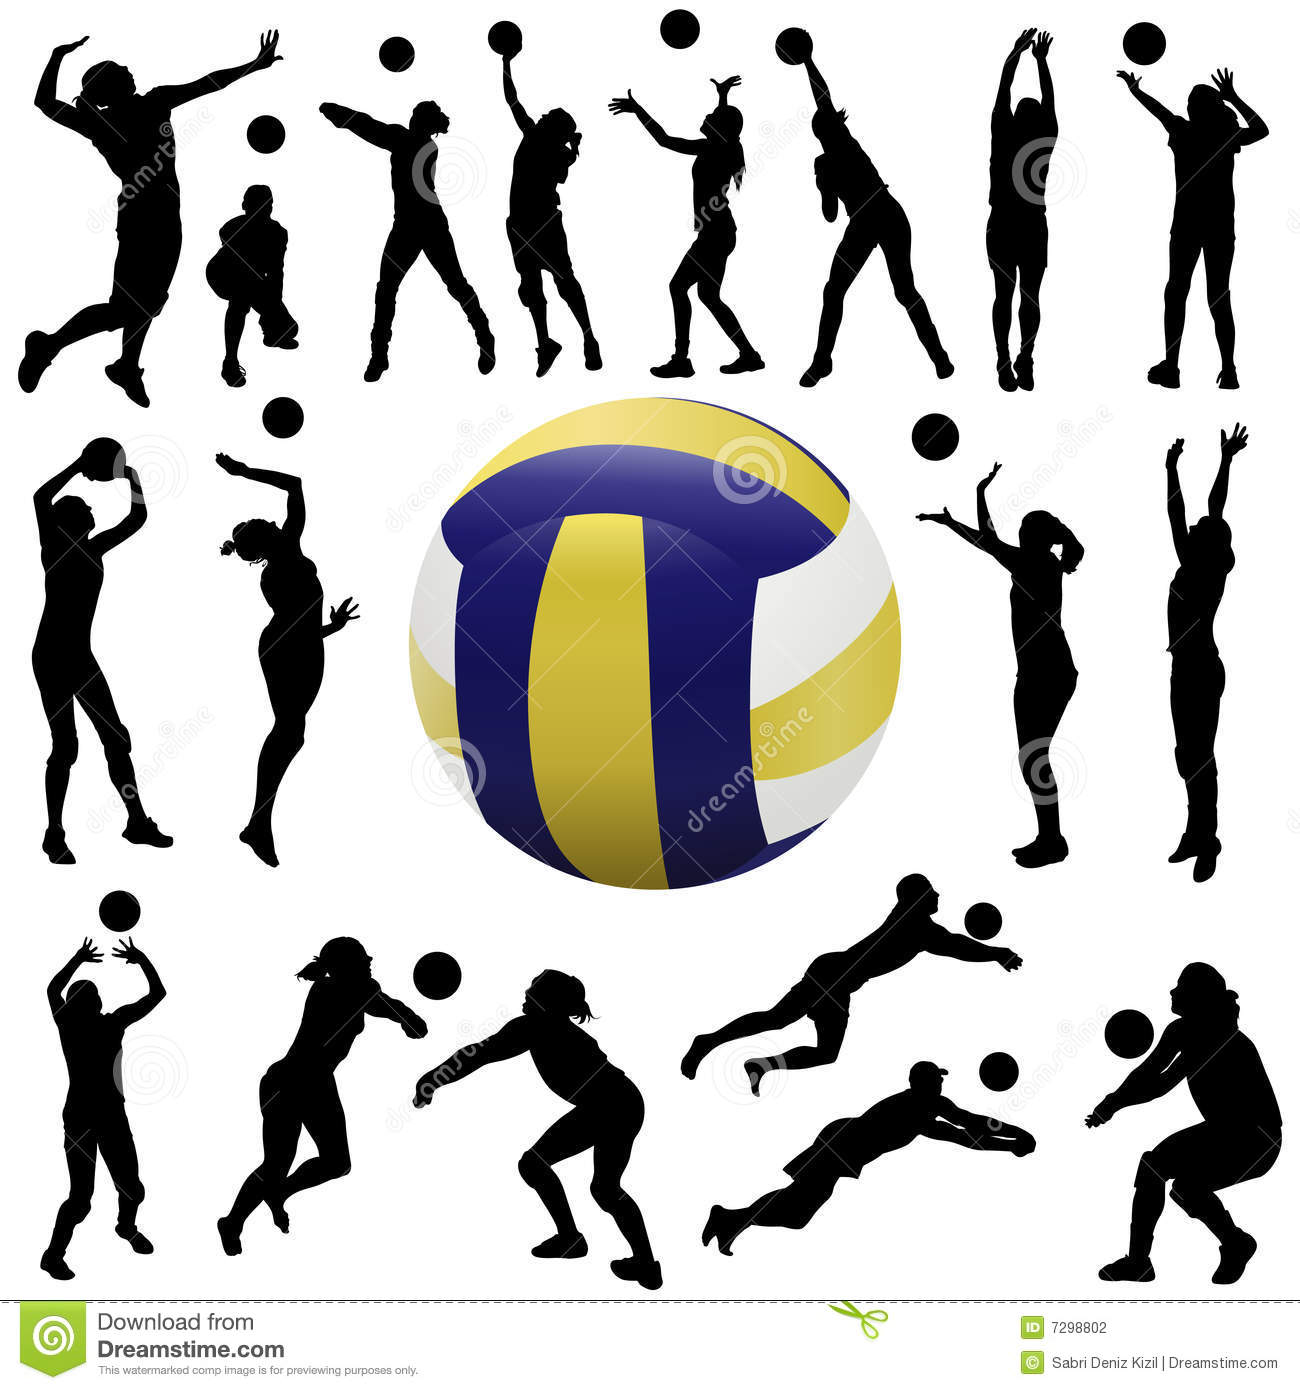 volleyball setting clipart - photo #7